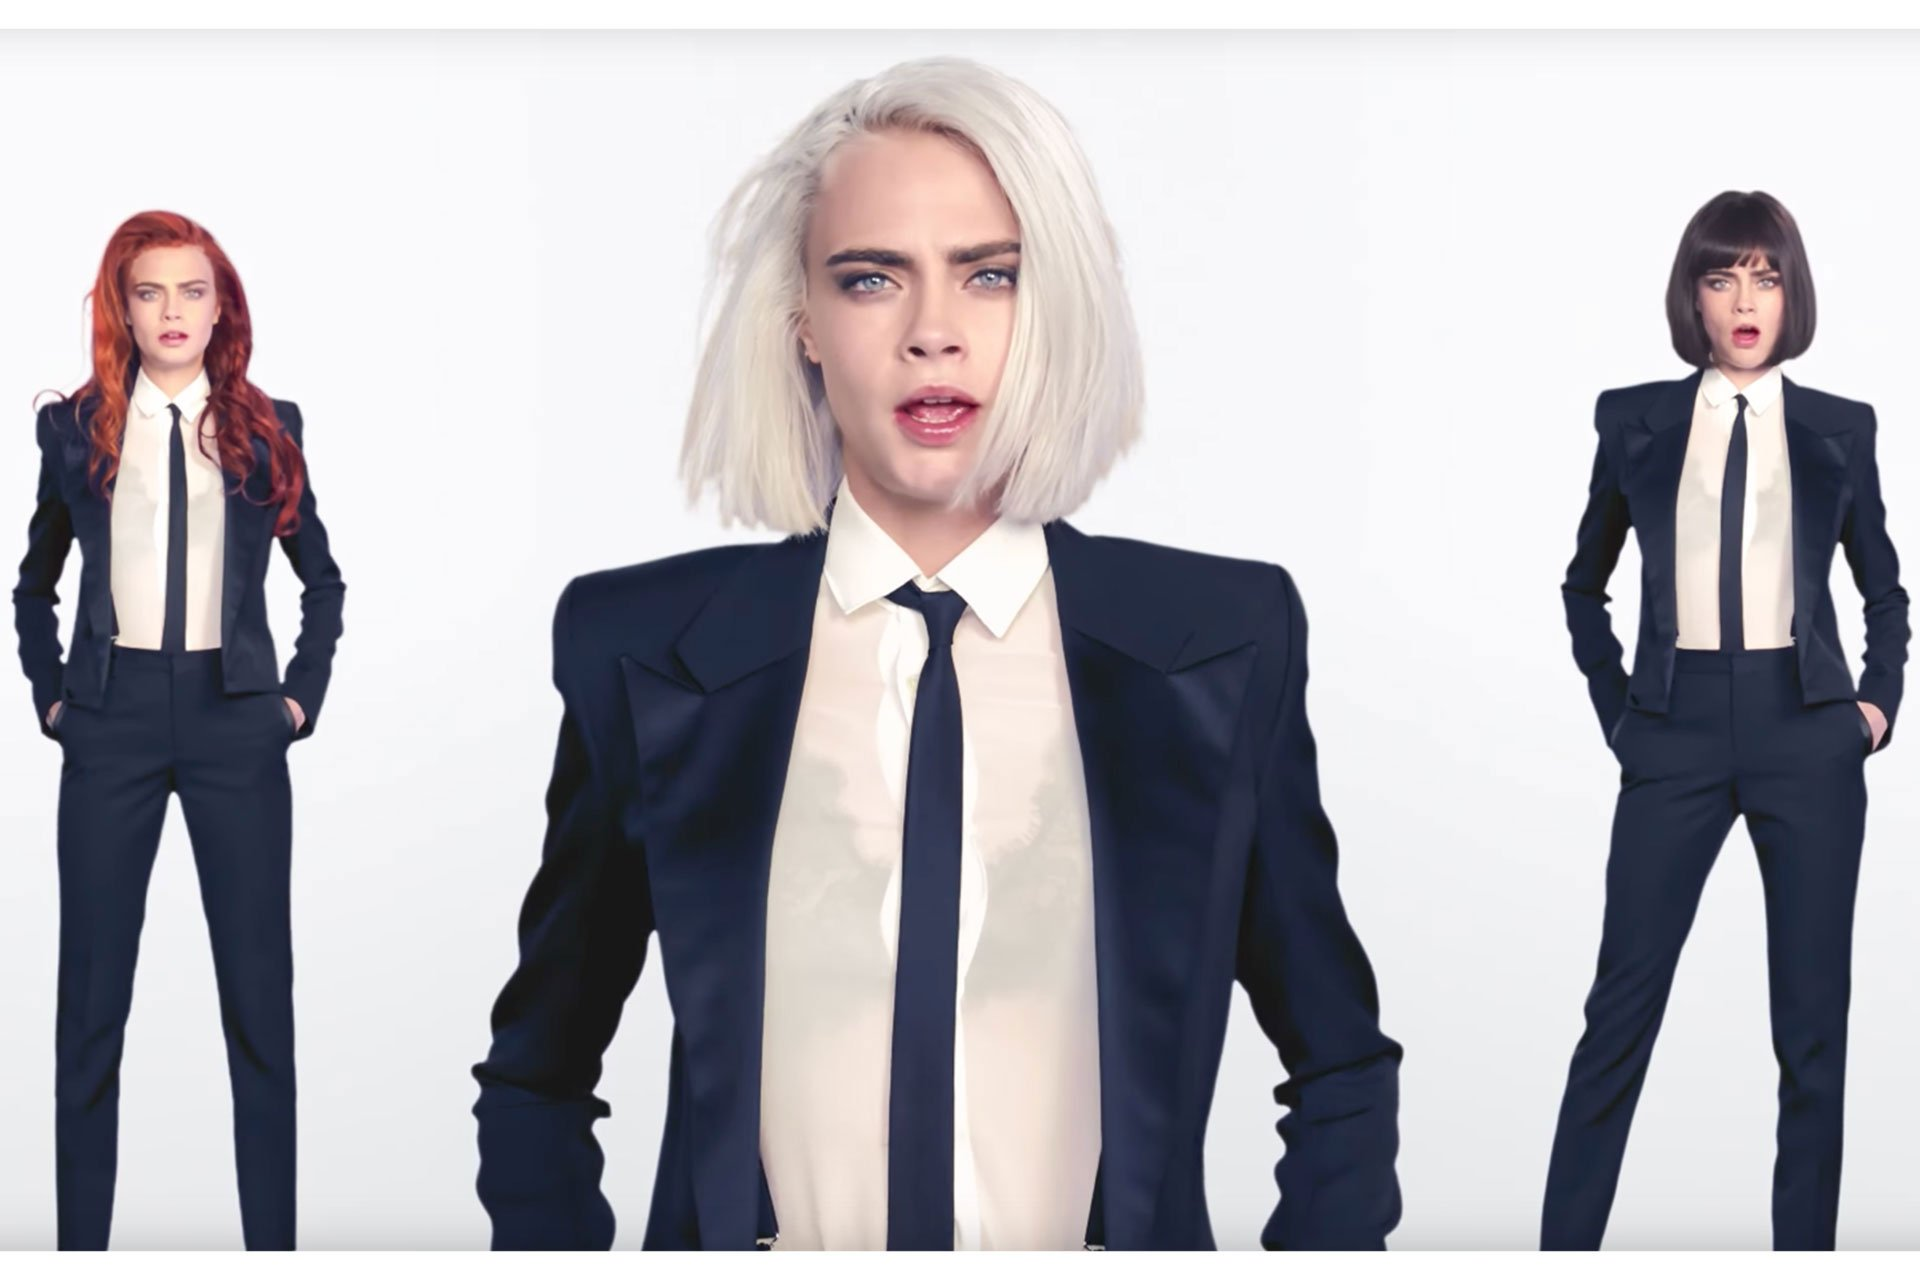 DID YOU SEE: @Caradelevingne has revealed her first music video: https://t.co/p6CUTMAylf https://t.co/iIULtPKYlF